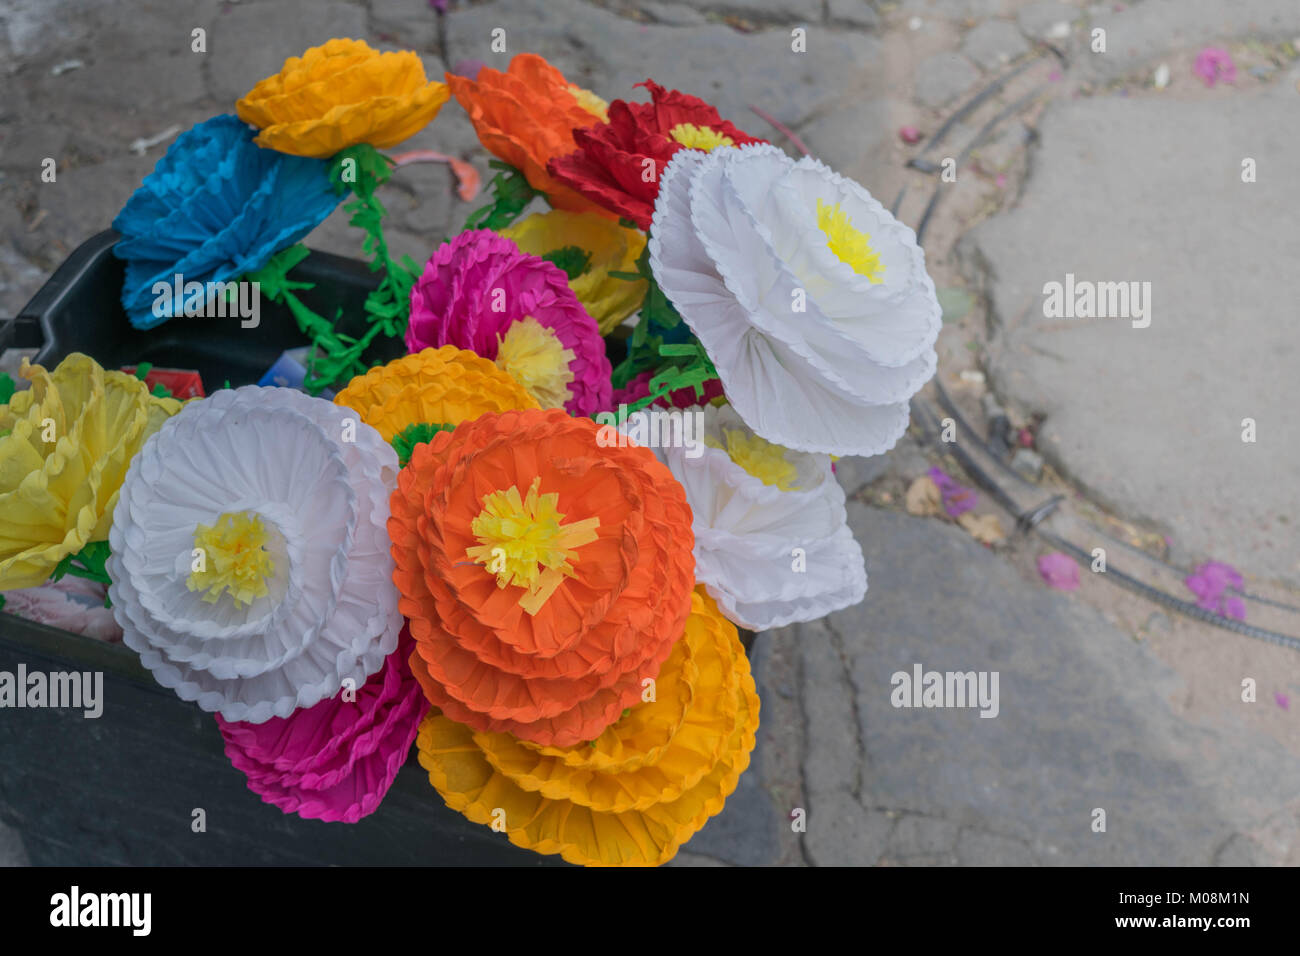 An assortment of fake flowers, in many different colors, in Mexico - Stock Image